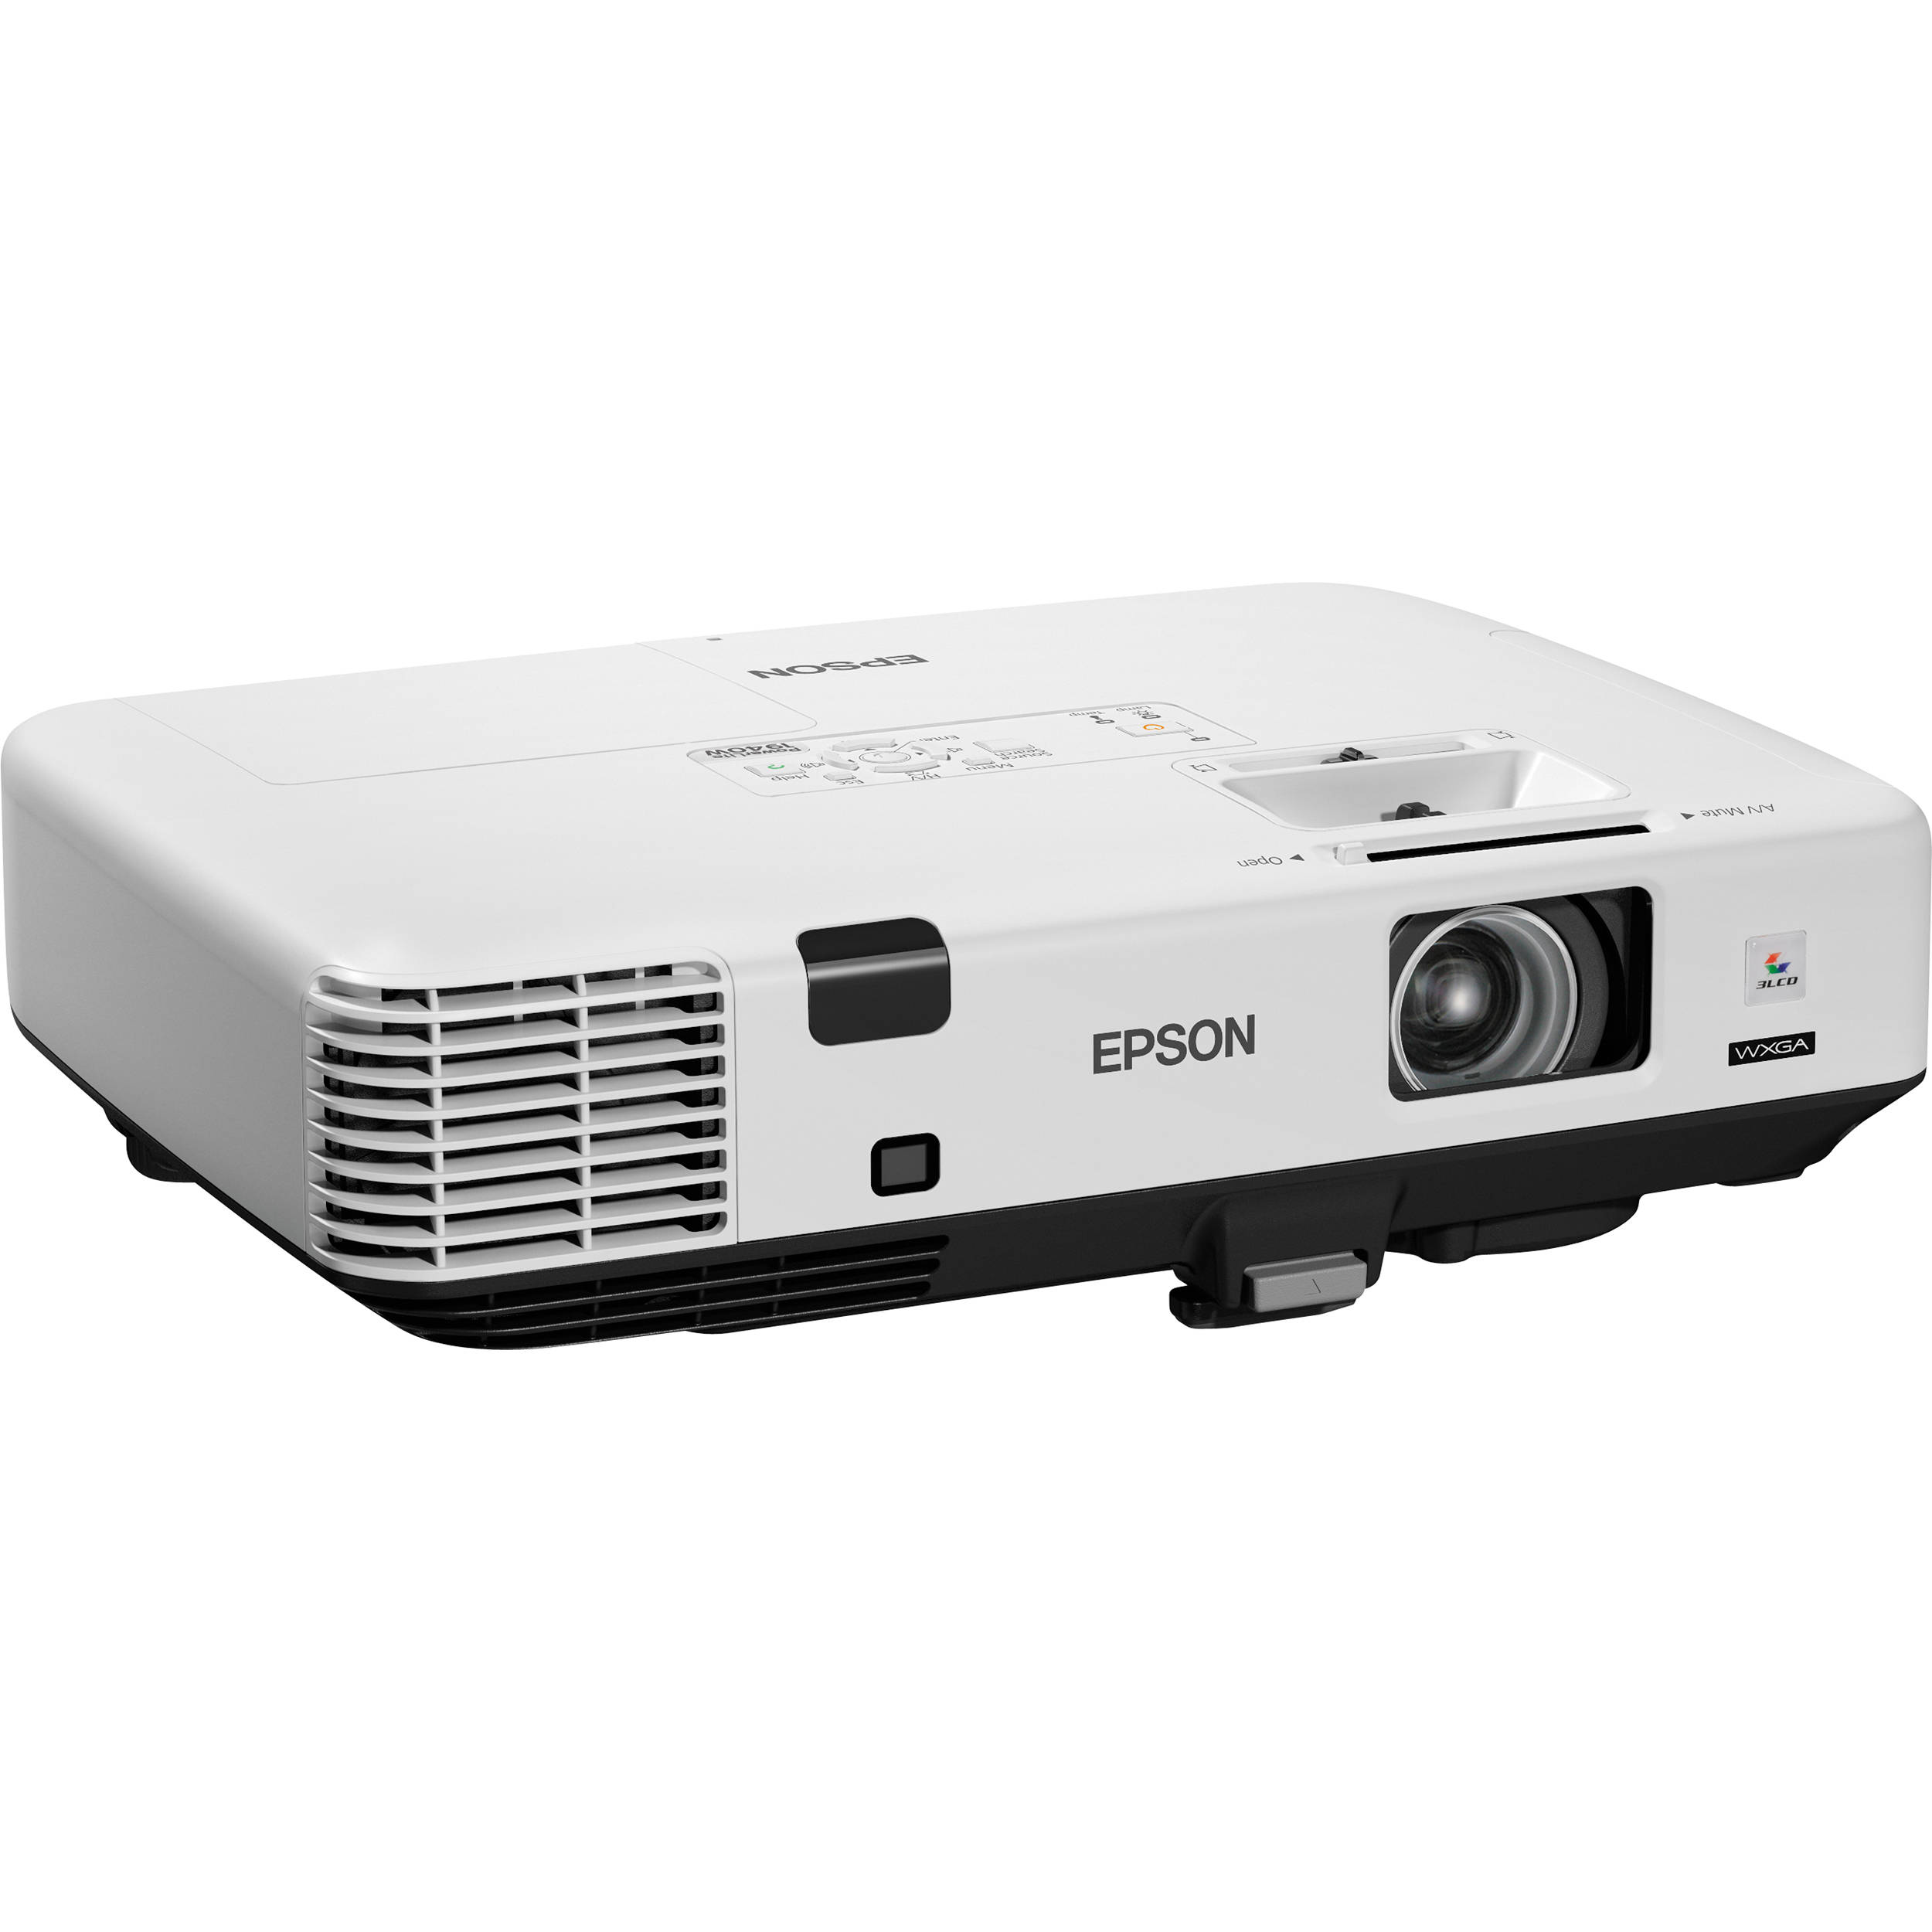 Creative Tarjson Sbrecon3dfp together with A2 Plus Powered Speakers further Watch as well How To Use Your Xbox One To Manage Your Tv And Set Top Boxdvr besides Page8. on optical digital audio out port